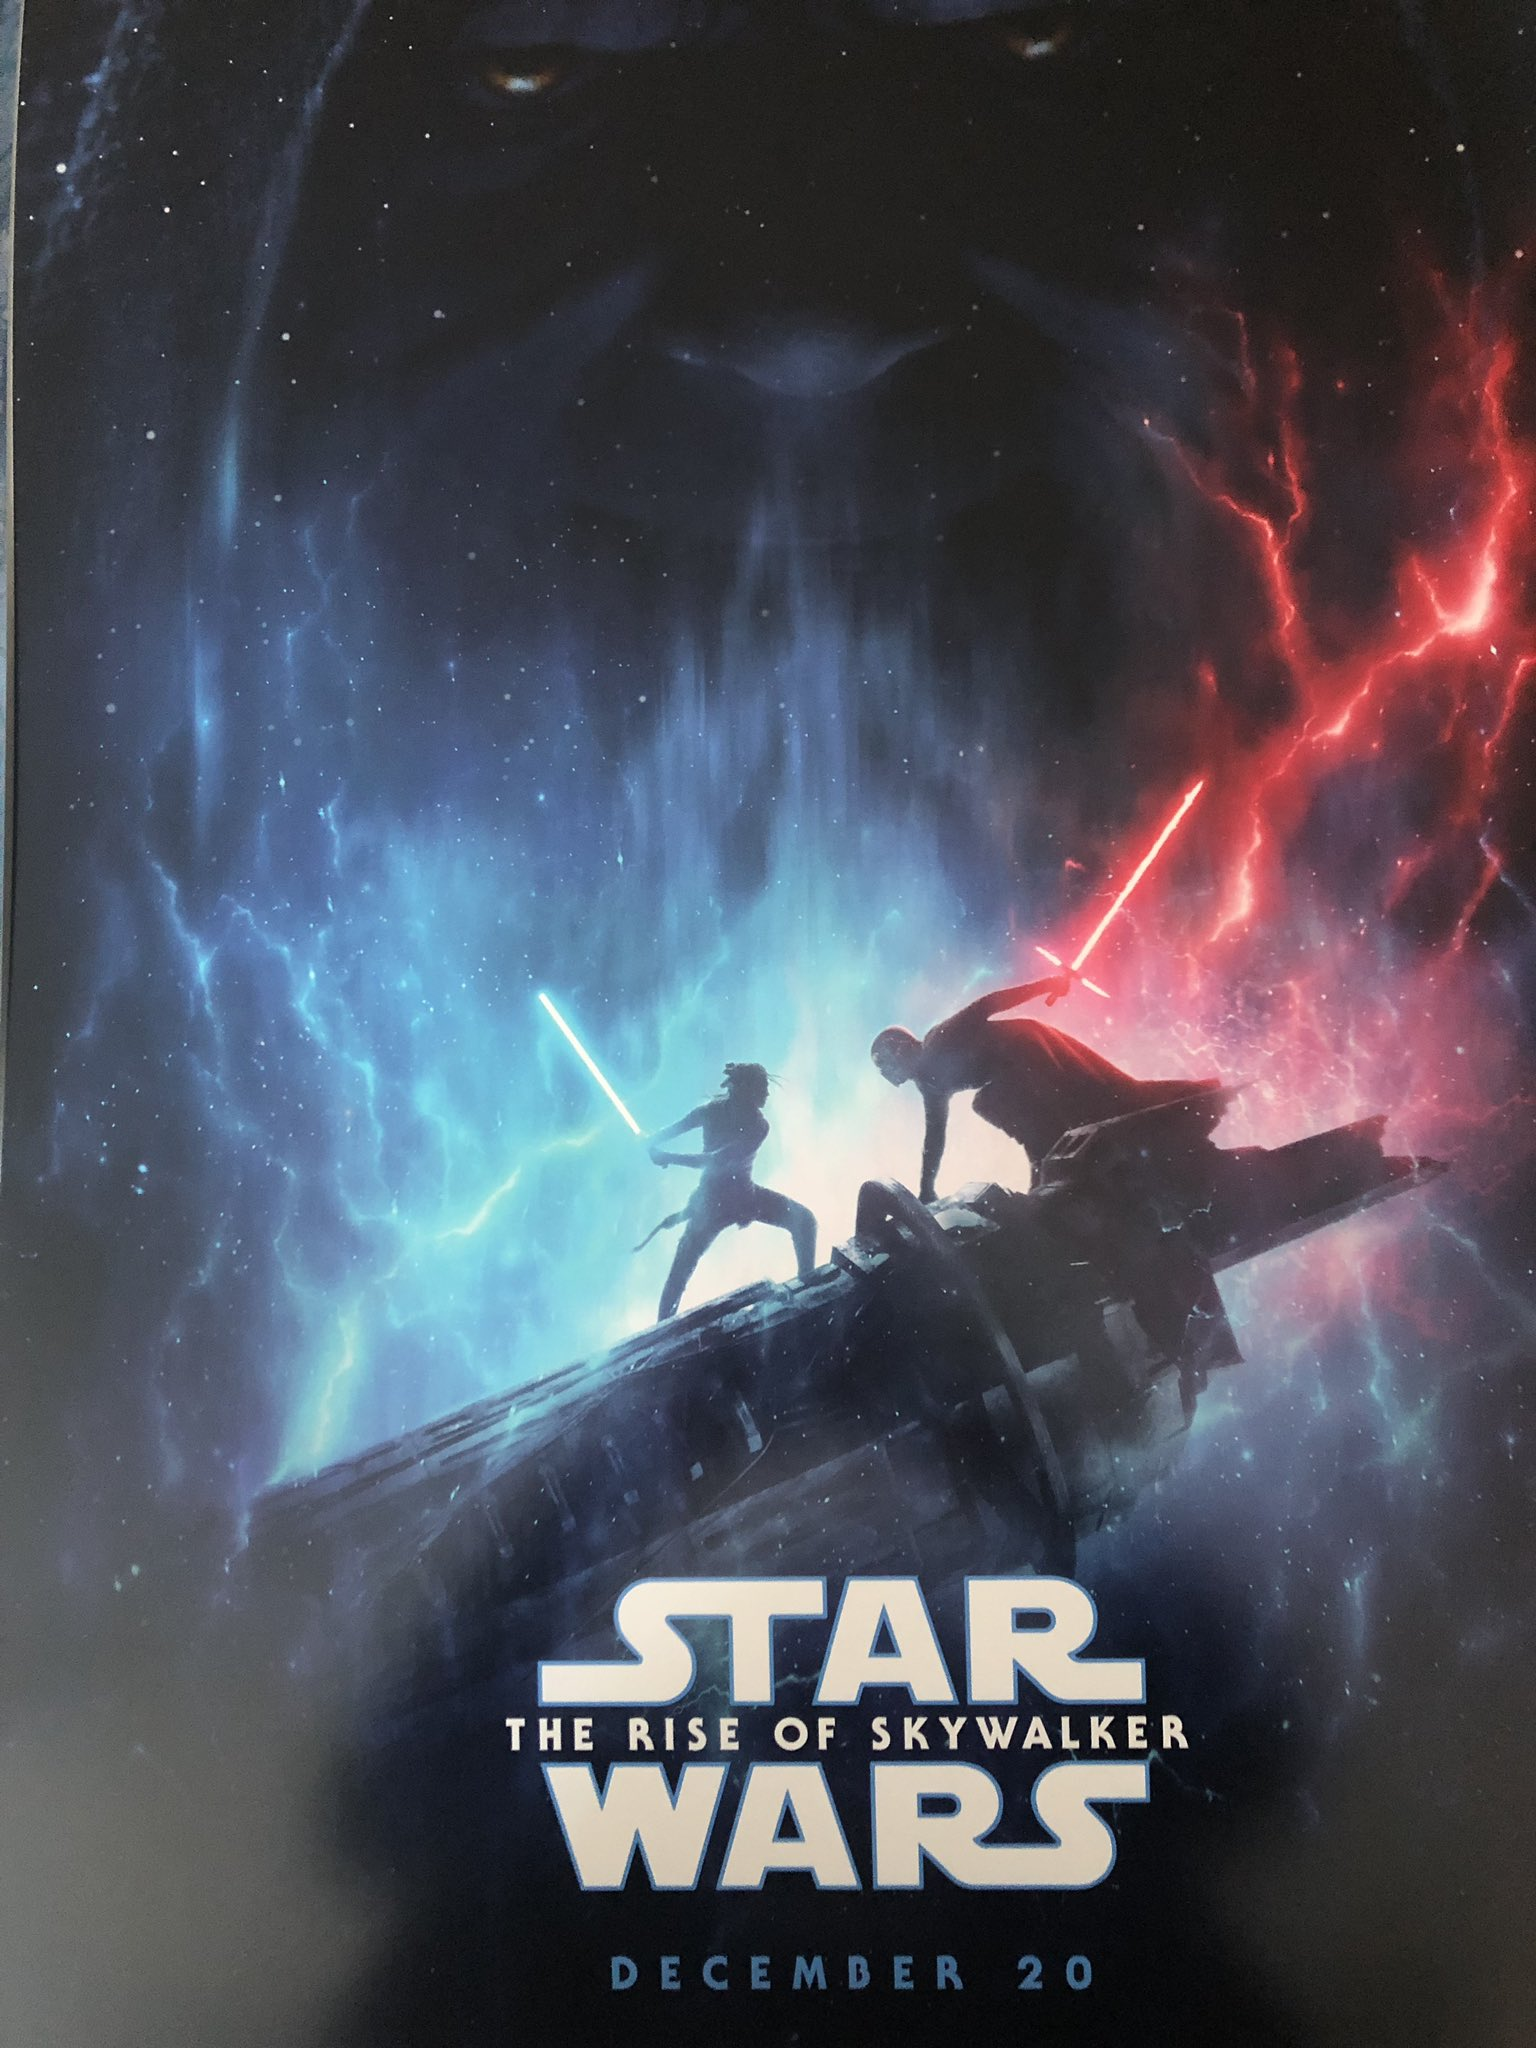 Imdb On Twitter In Addition To Starwars We Also Got Posters For Frozen2 And Onward D23expo